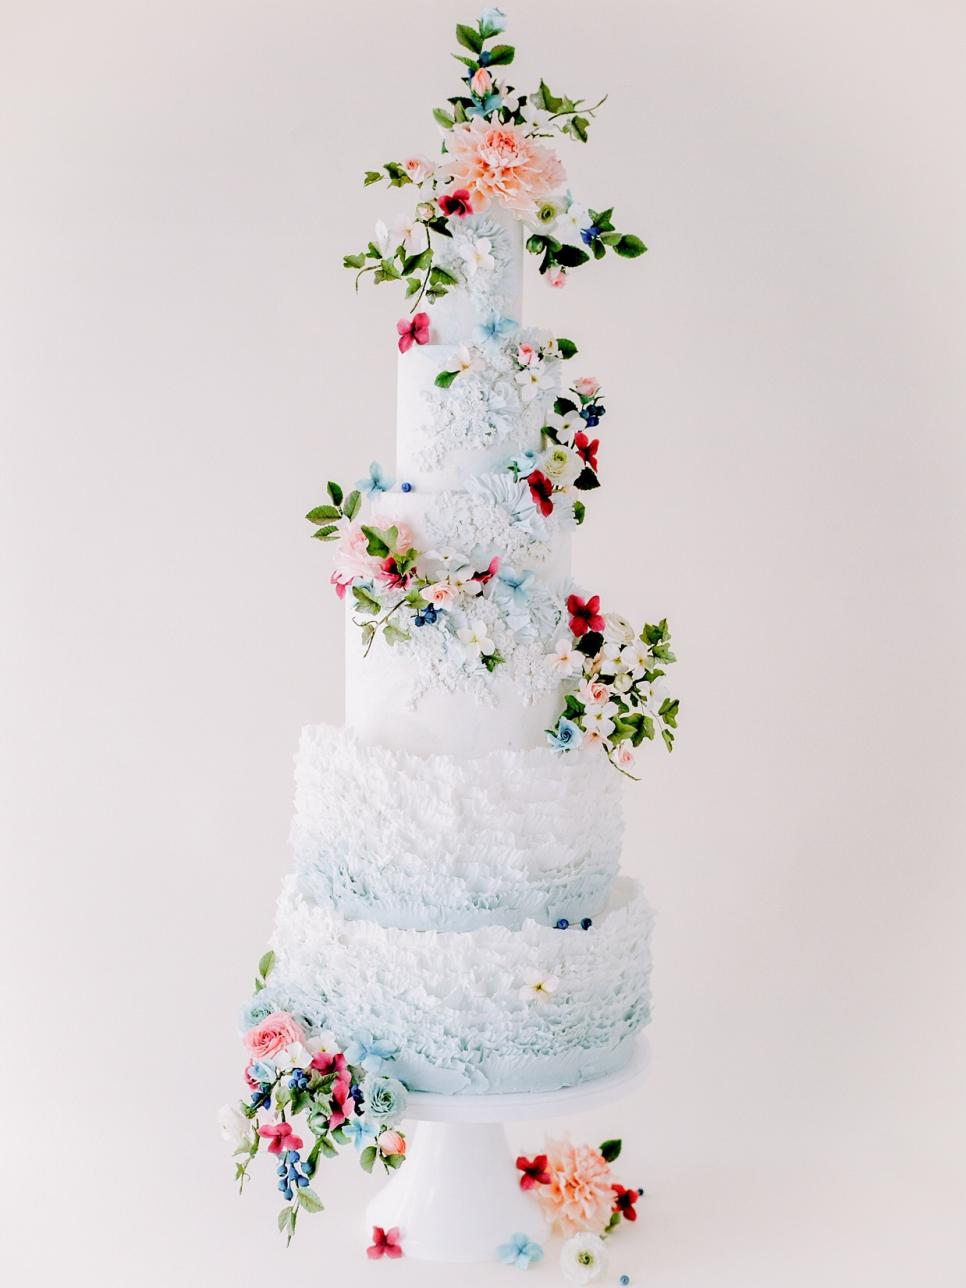 New Wedding Cake Trends in 2019 | Weddings | TLC com